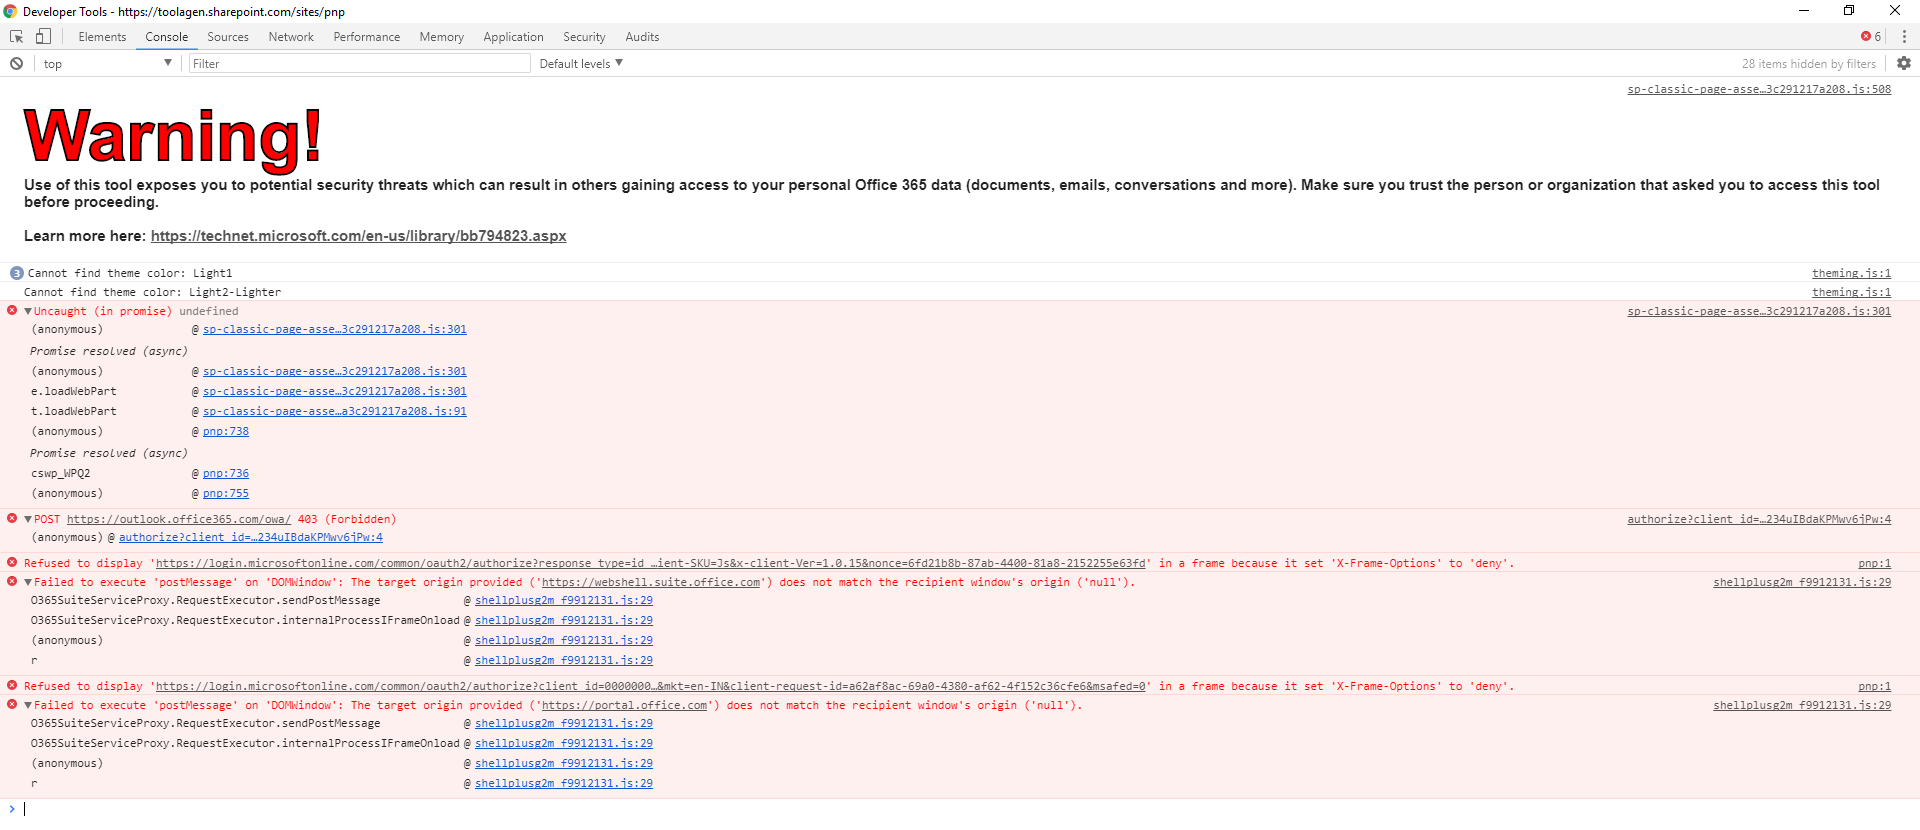 After deploying webpart to tenant it started throwing error